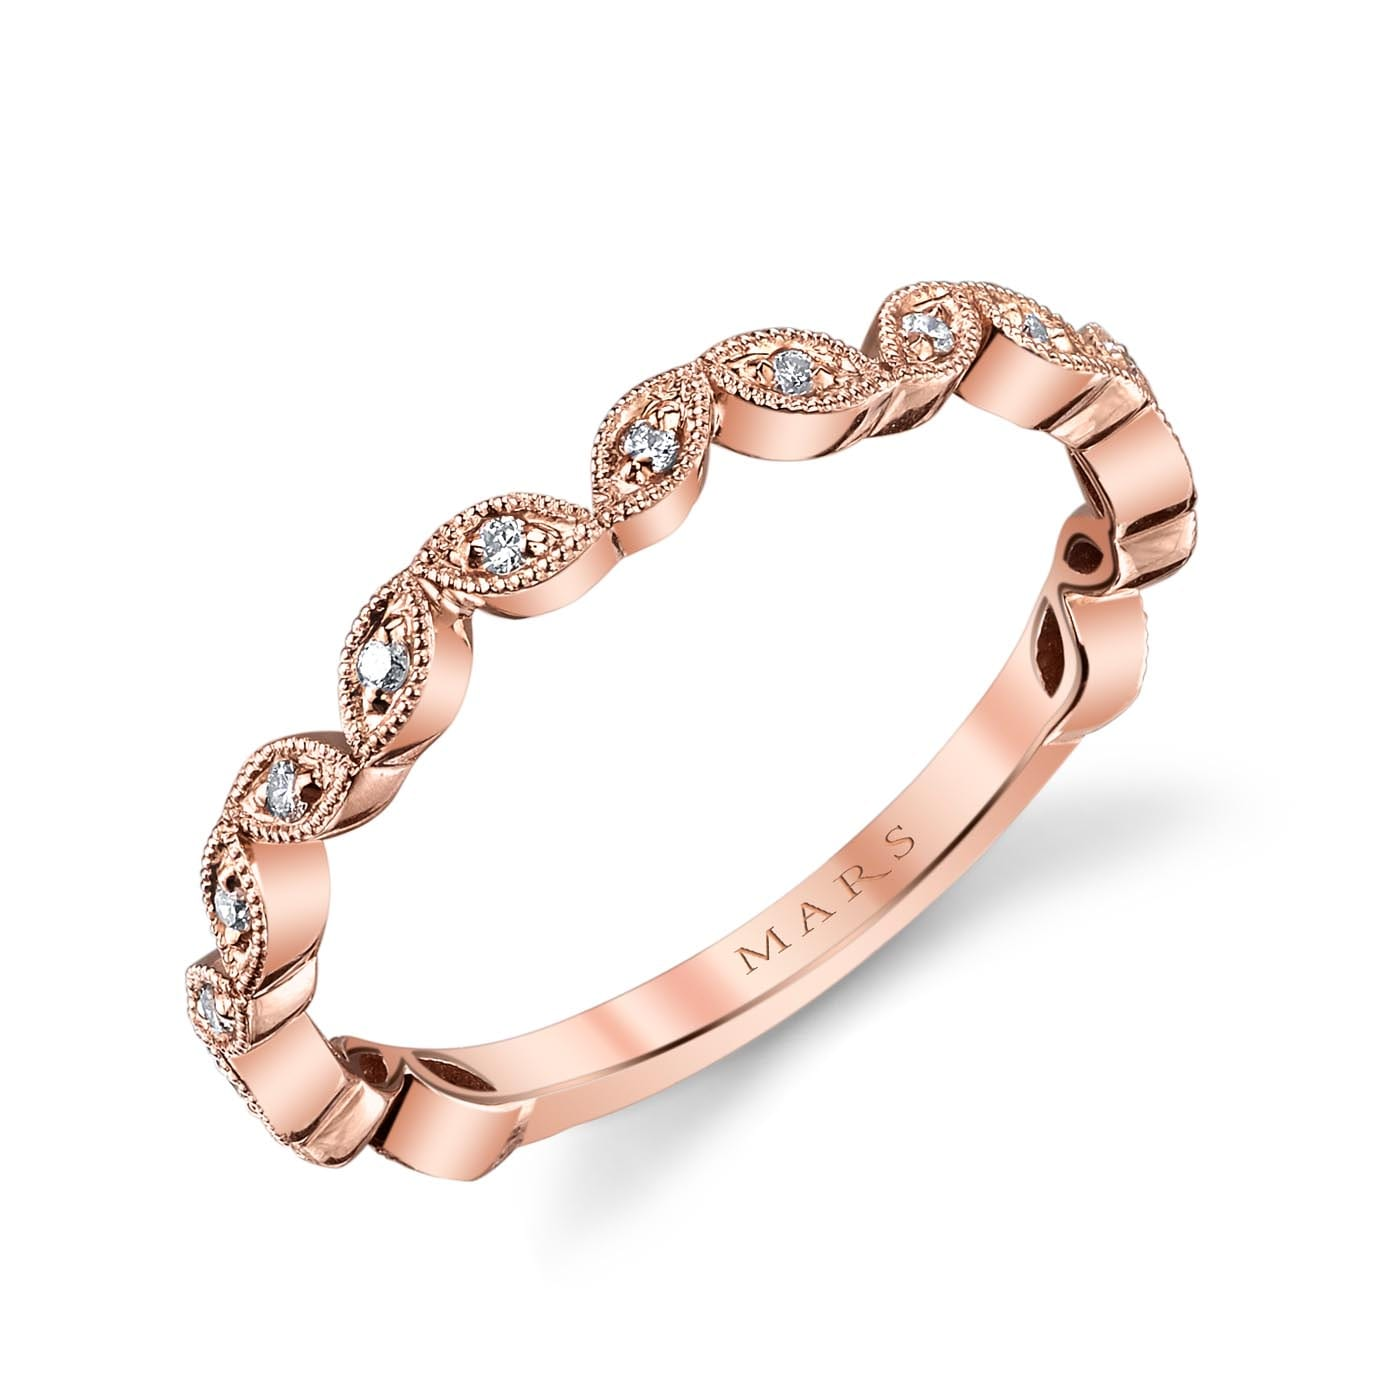 Diamond Ring - Stackable Style #: MARS-26692